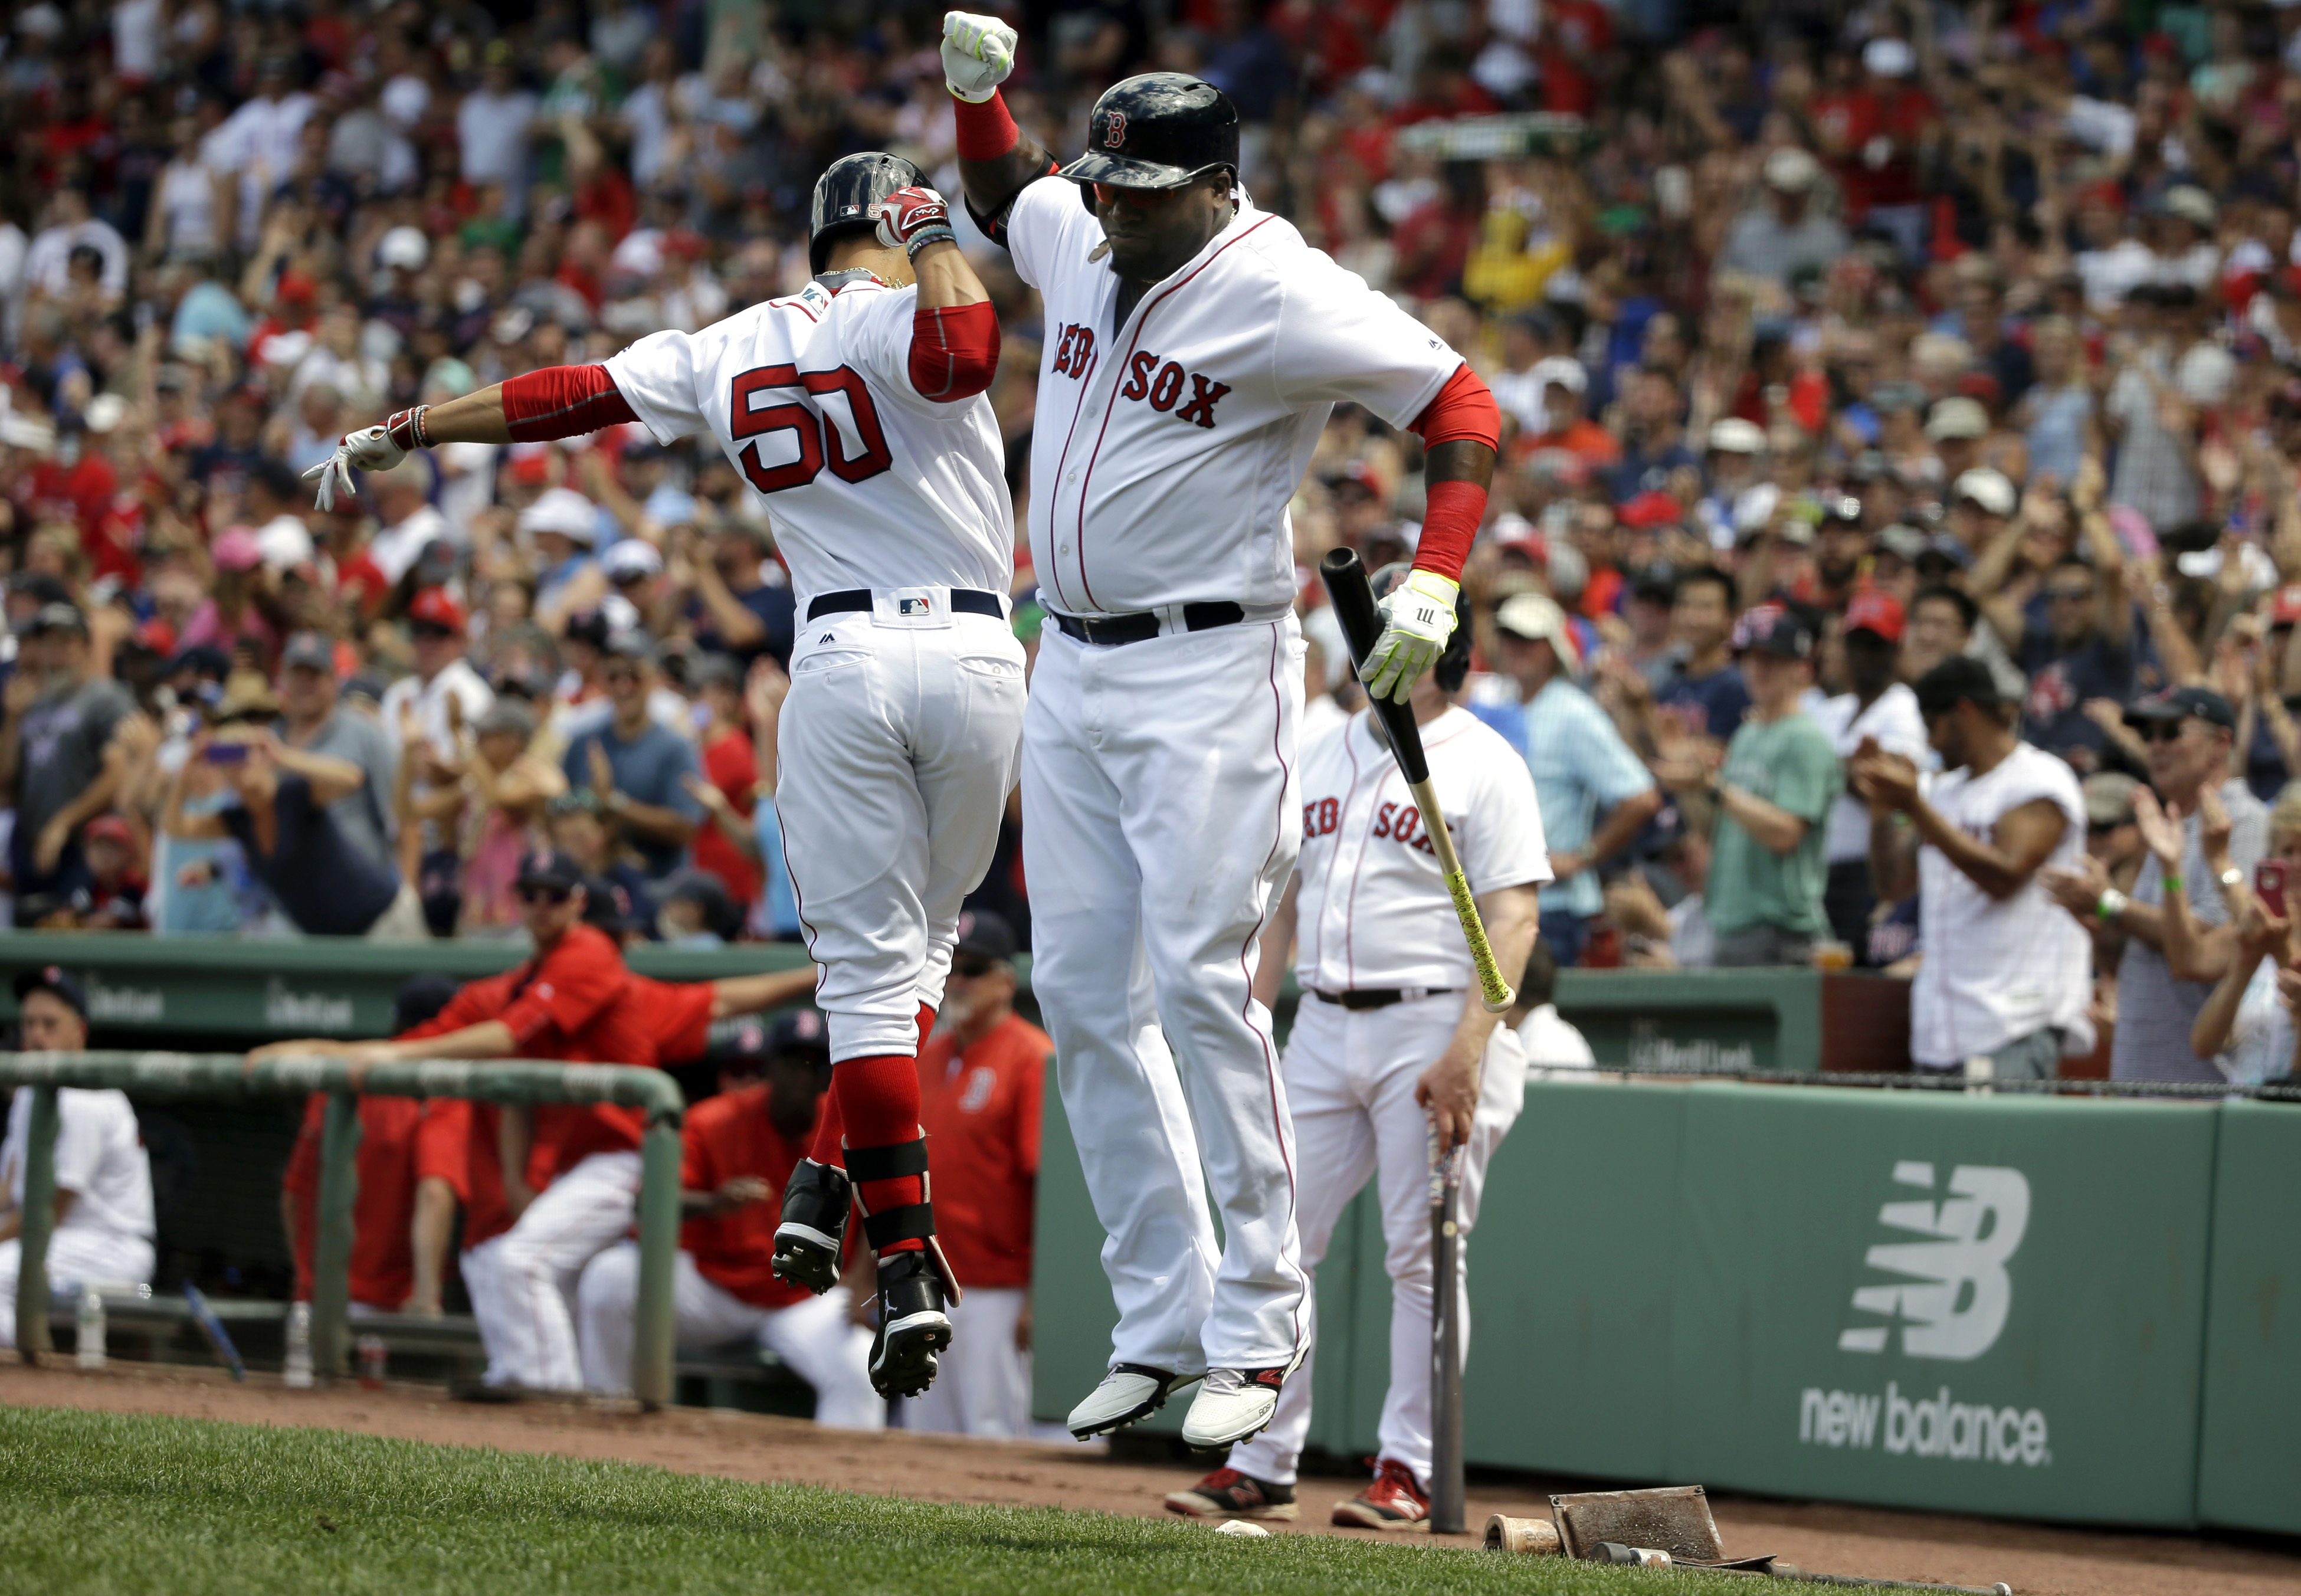 Boston Red Sox's Mookie Betts (50), left, celebrates with teammate David Ortiz, right, after hitting a two-run home run off a pitch from Arizona Diamondbacks starting pitcher Zack Greinke in the first inning of a baseball game, Sunday, Aug. 14, 2016, in B